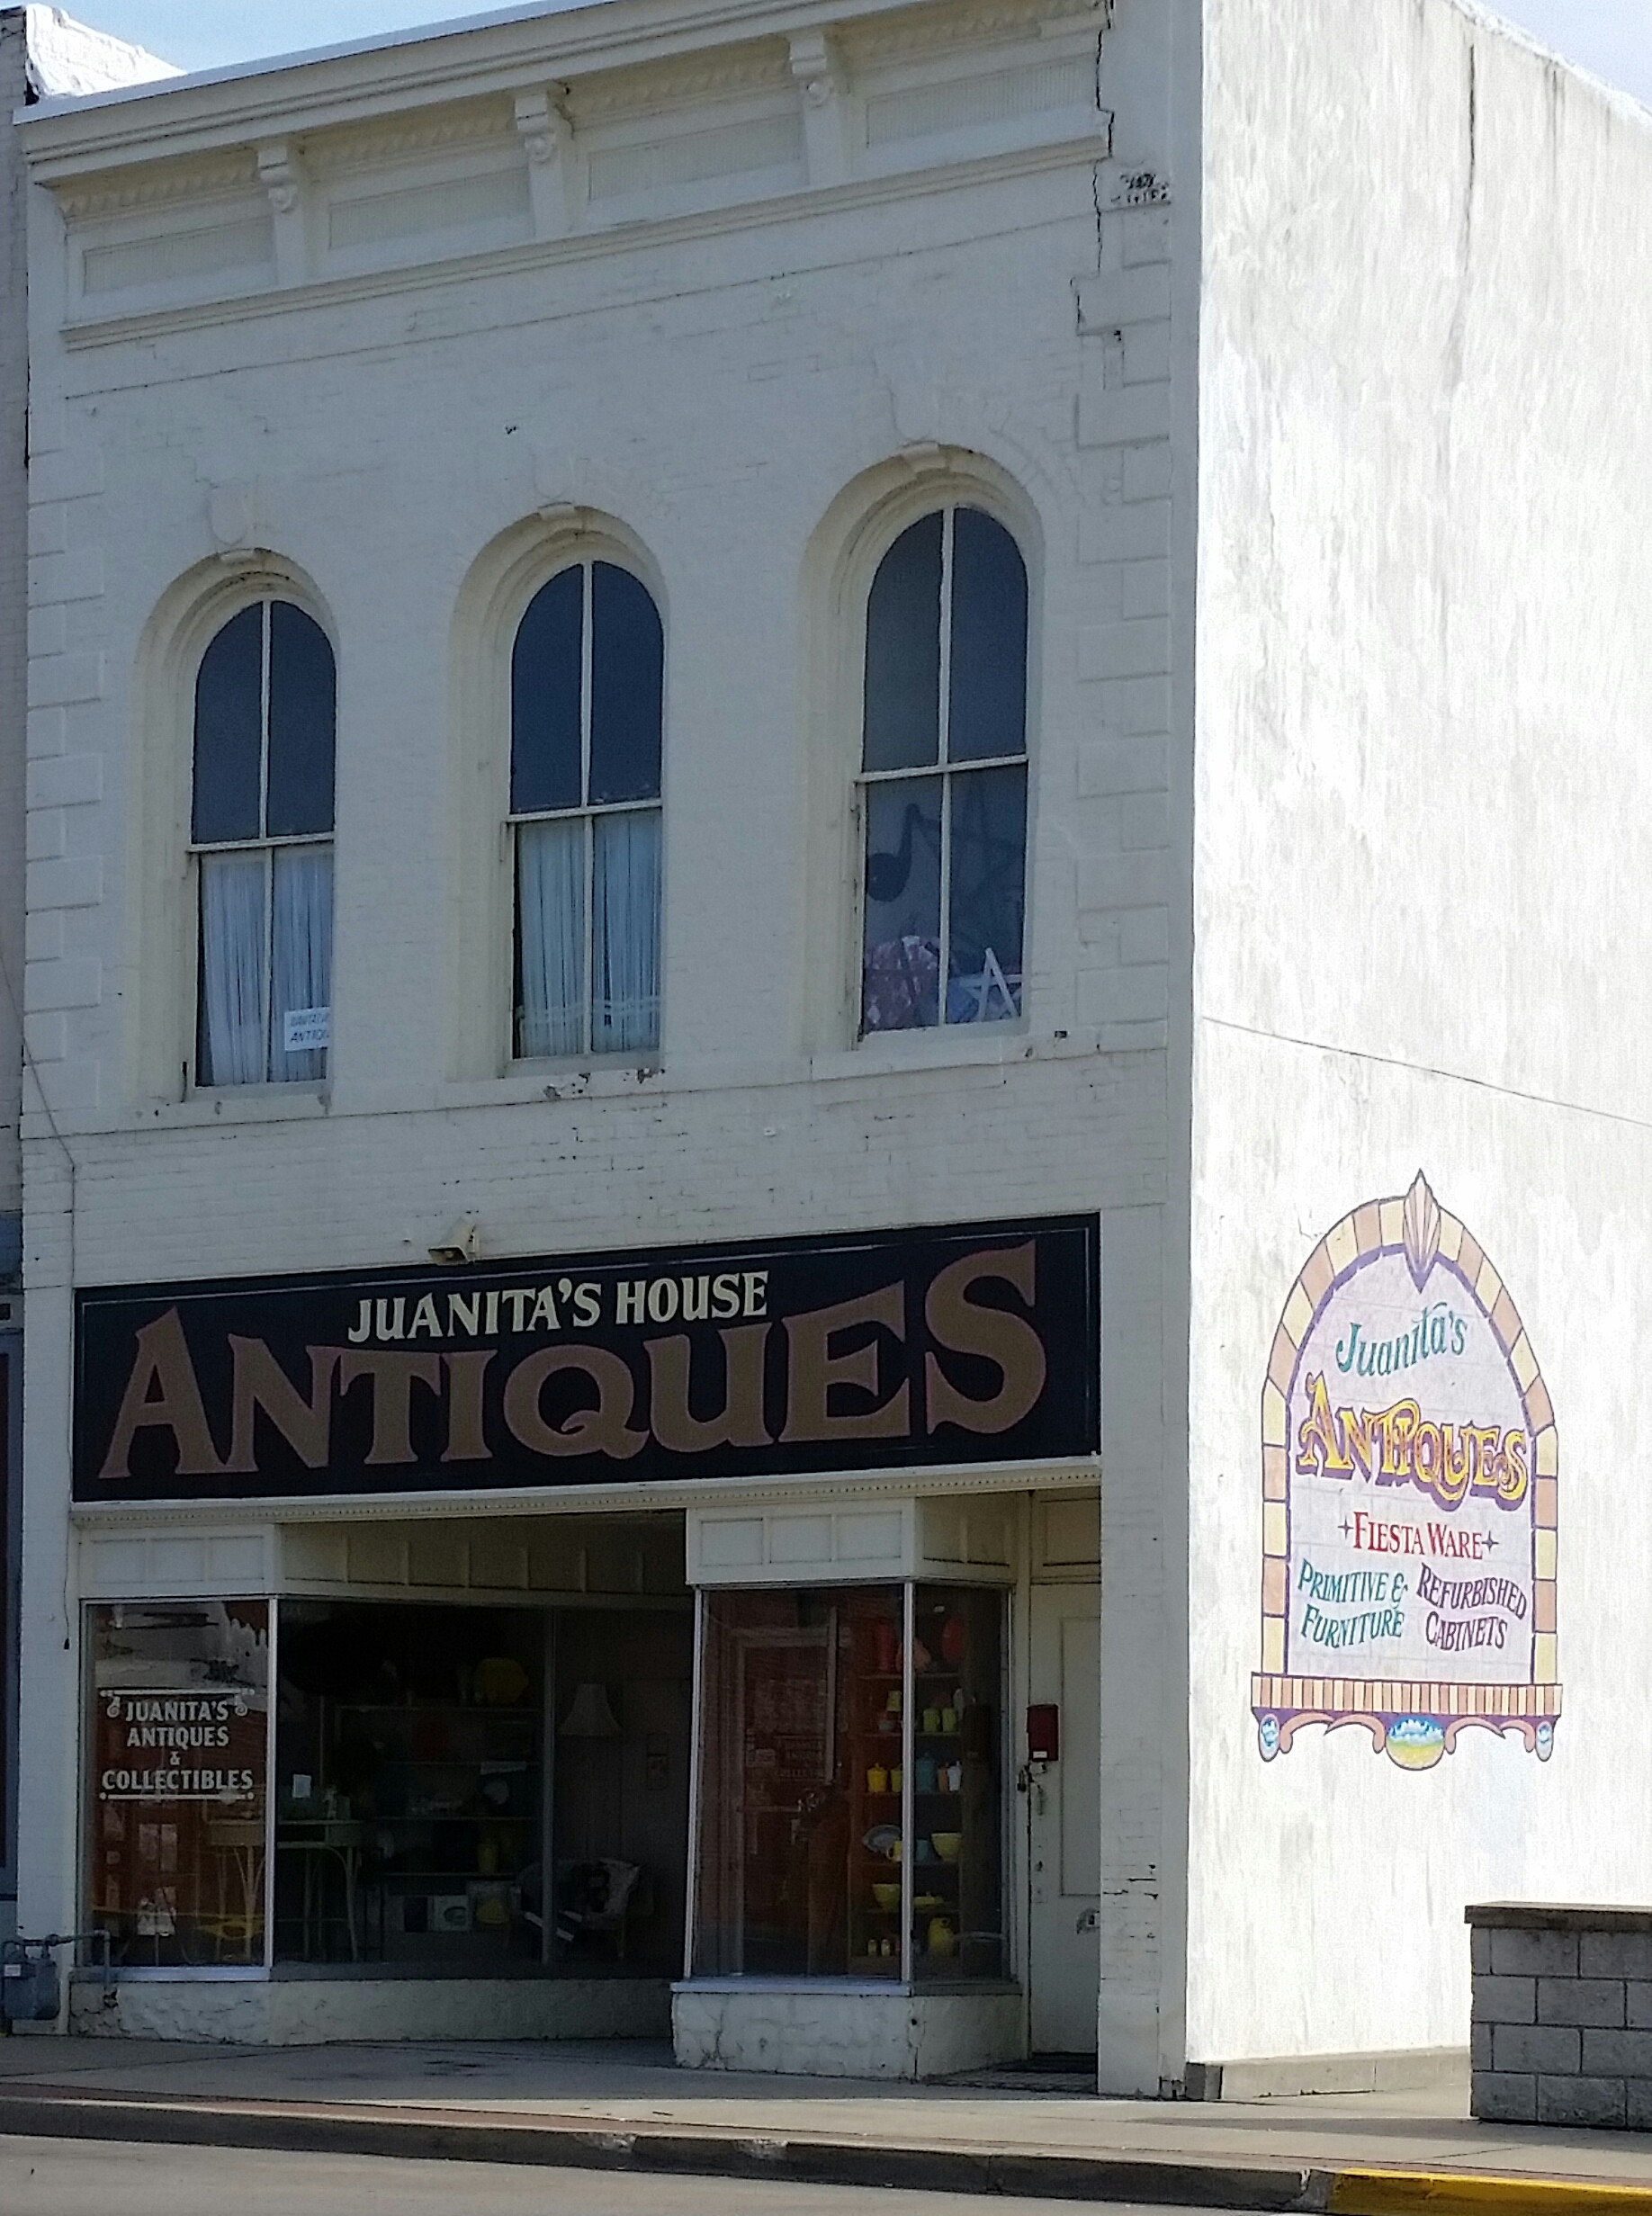 Juanita's House of Antiques